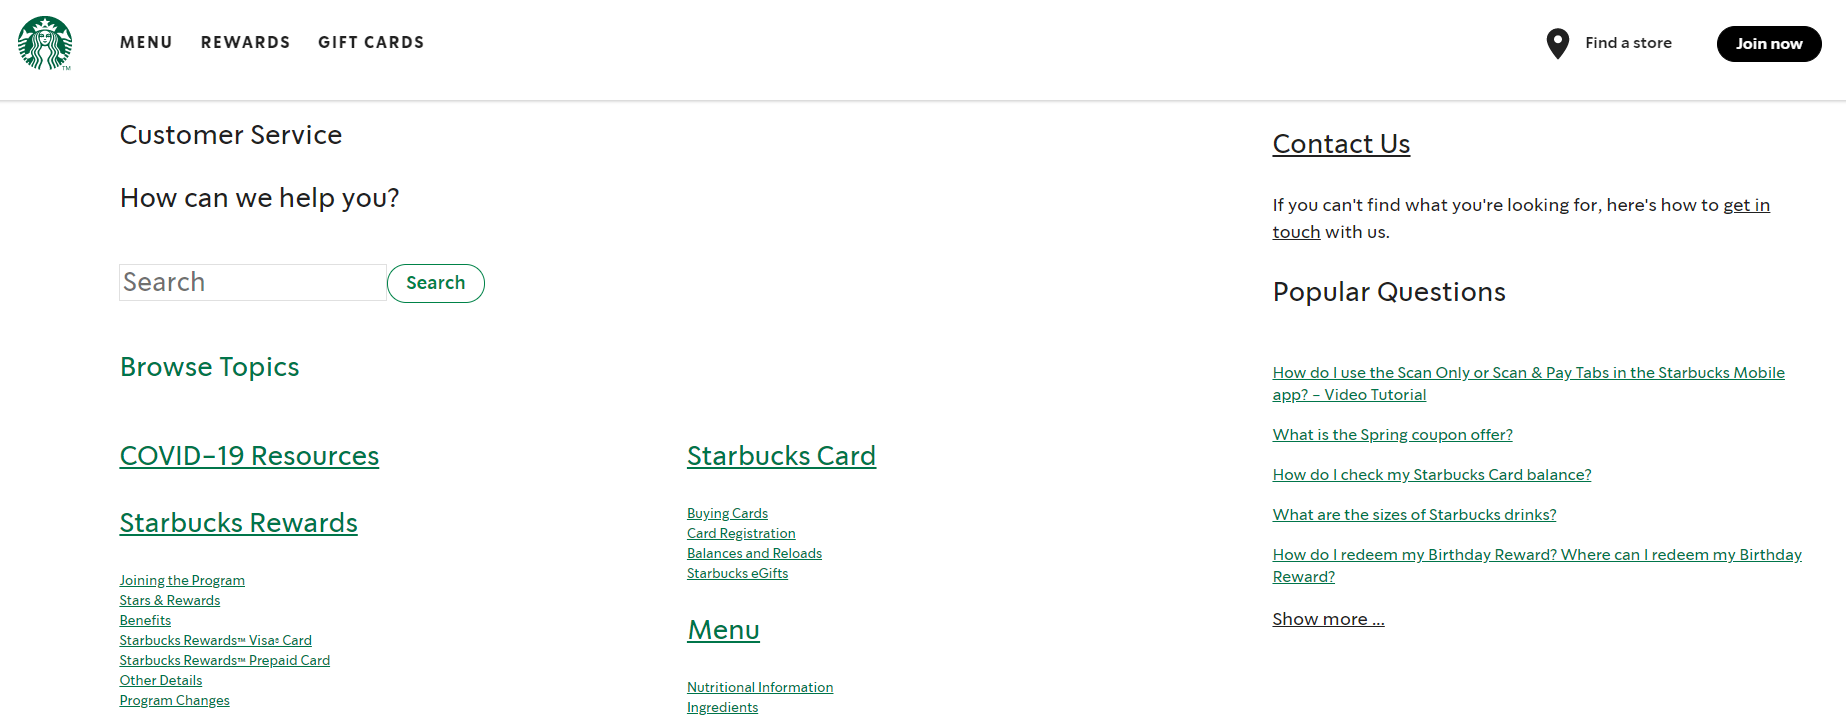 Starbucks' well-crafted FAQ section